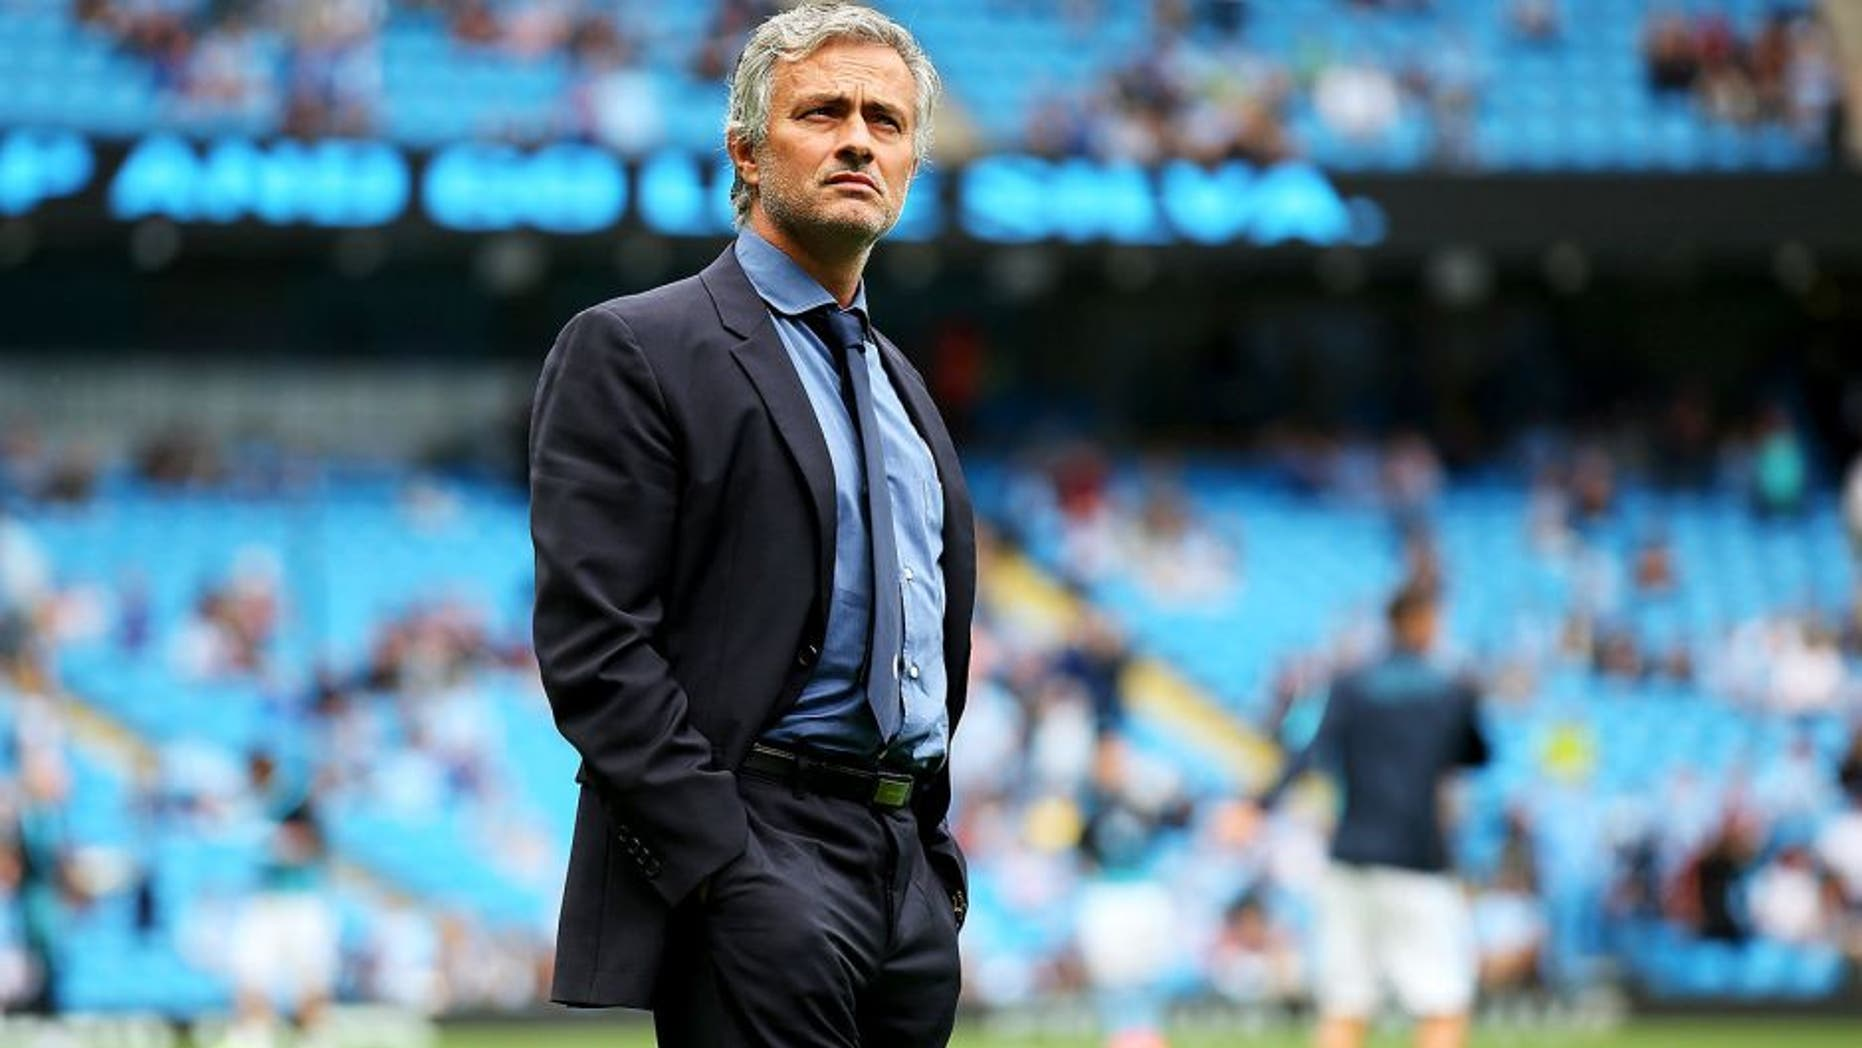 MANCHESTER, ENGLAND - AUGUST 16: Jose Mourinho, manager of Chelsea looks on prior to the Barclays Premier League match between Manchester City and Chelsea at the Etihad Stadium on August 16, 2015 in Manchester, England. (Photo by Alex Livesey/Getty Images)